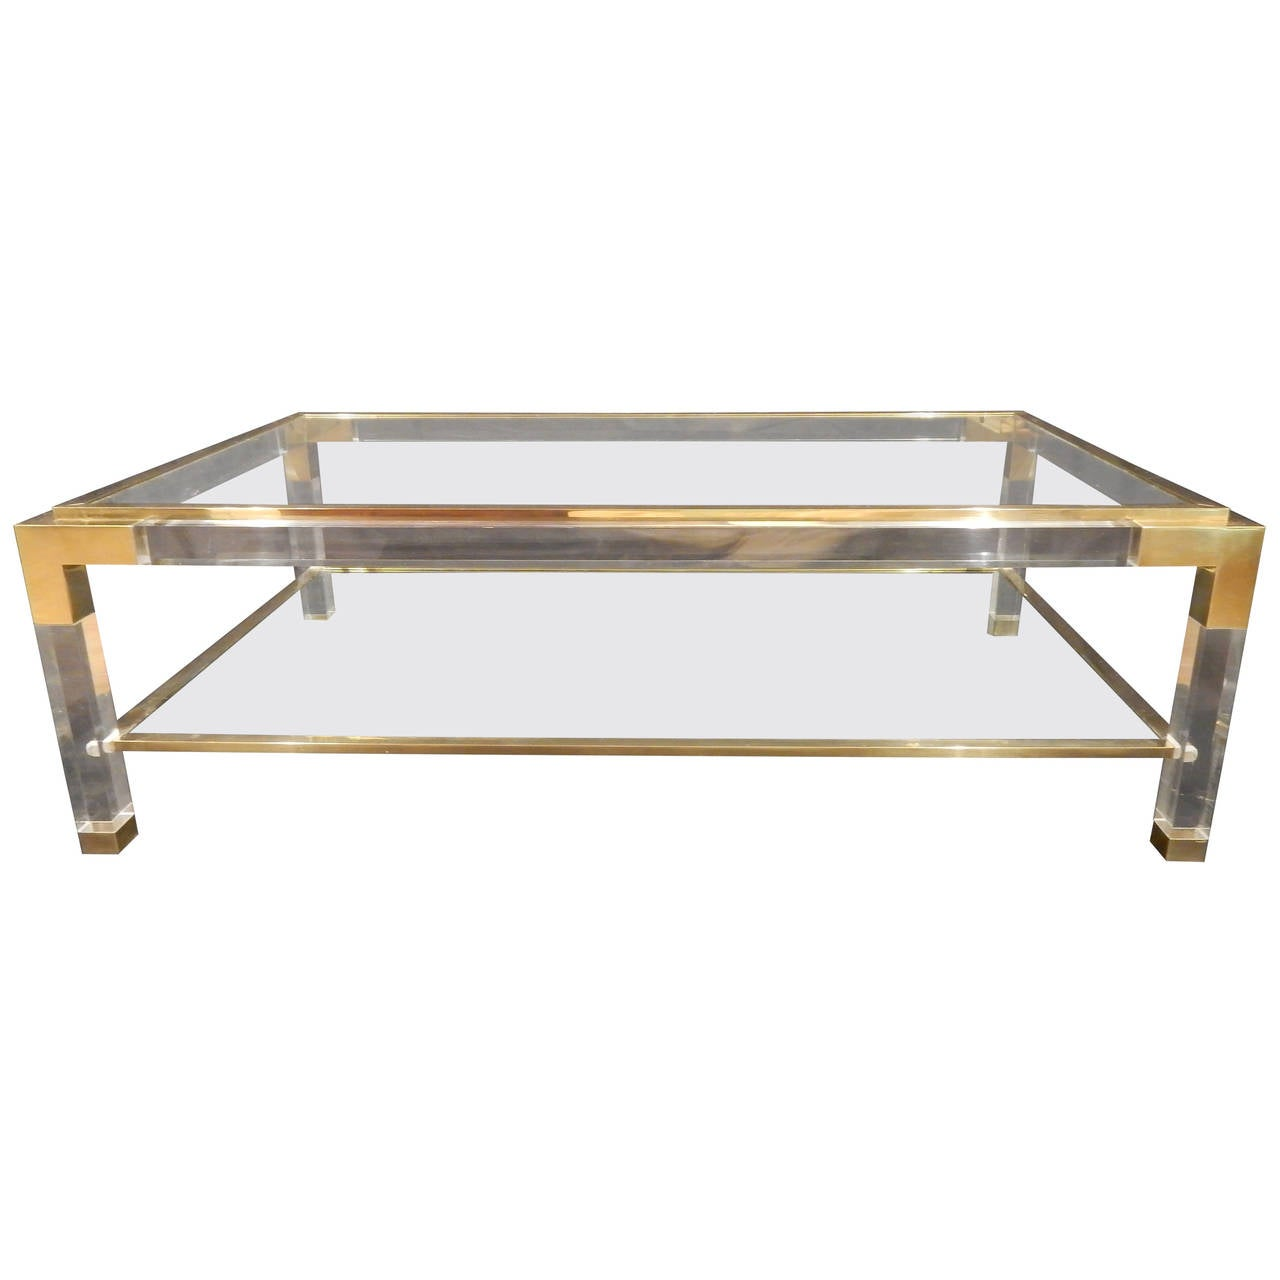 Vintage Brass, Lucite And Glass Coffee Table At 1stdibs